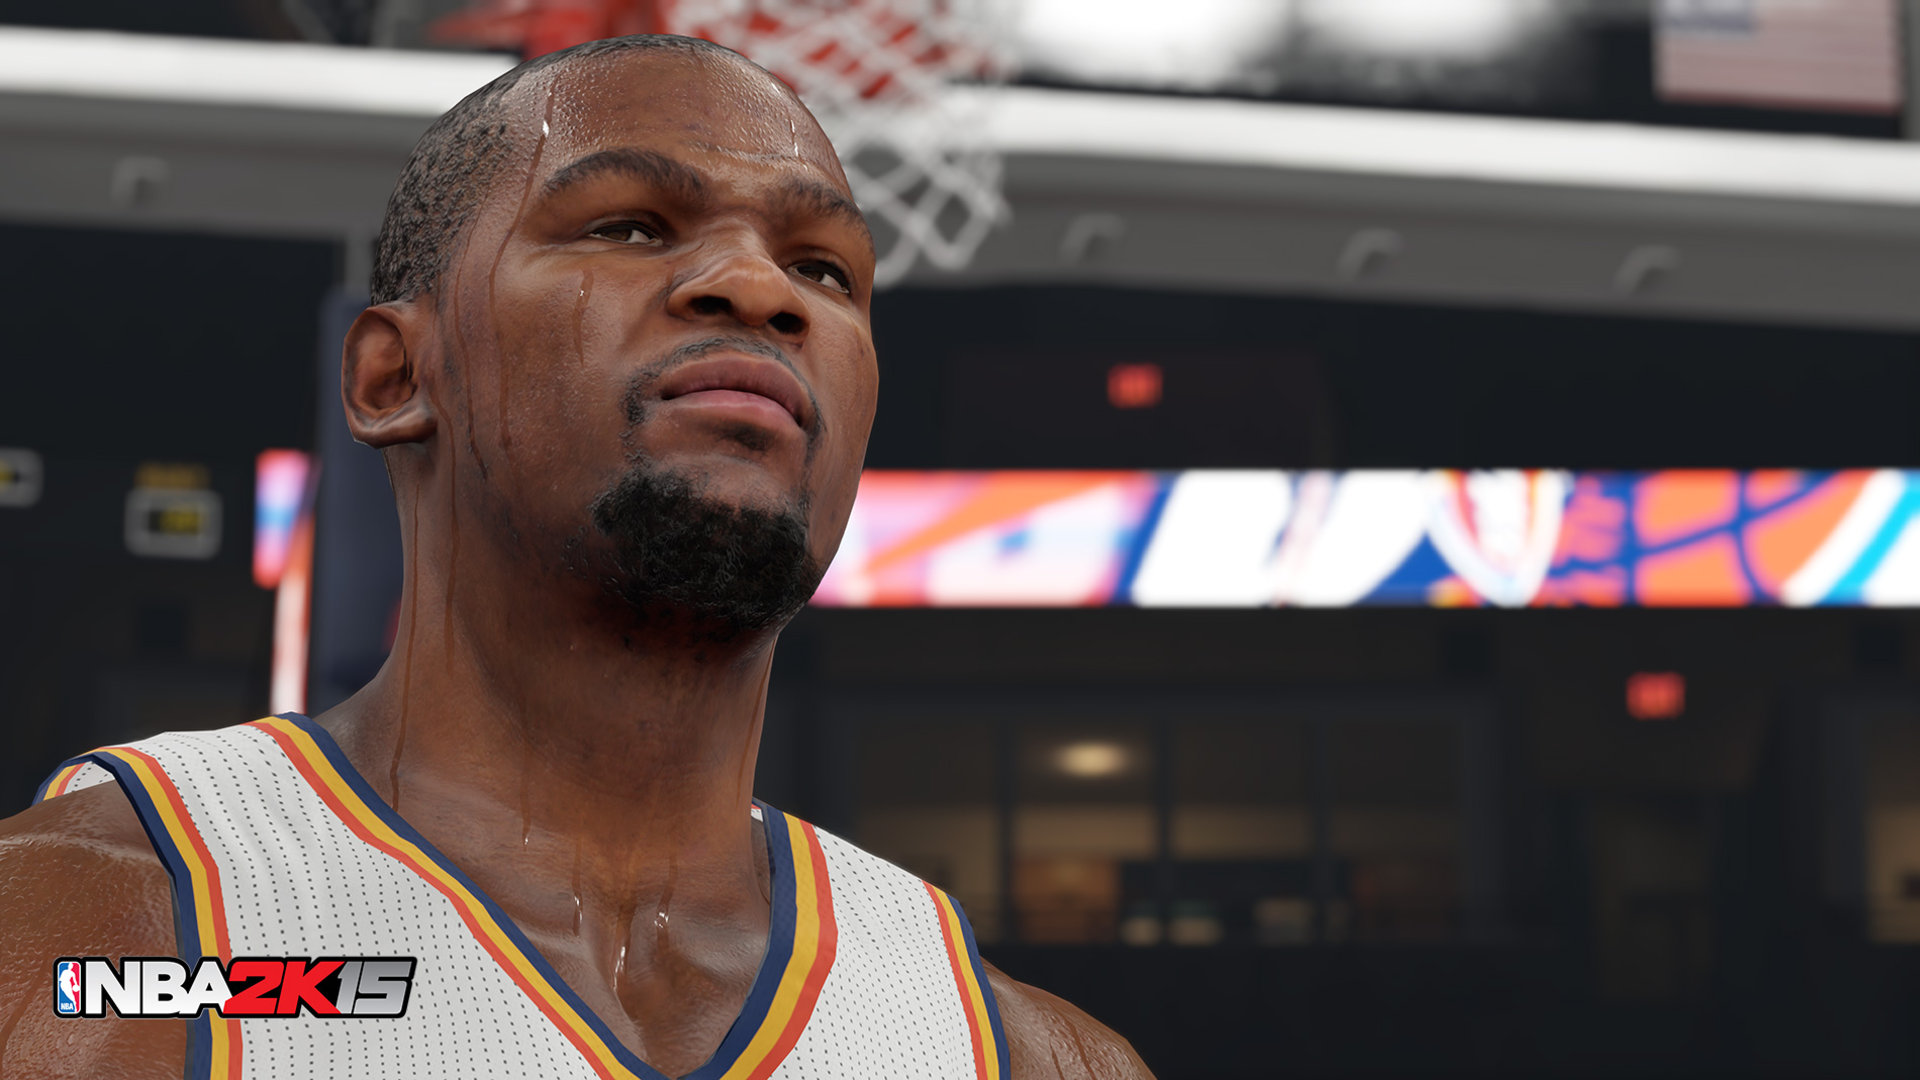 nba-2k15-pc-screenshot_1900.0.0_cinema_1920.0.jpg